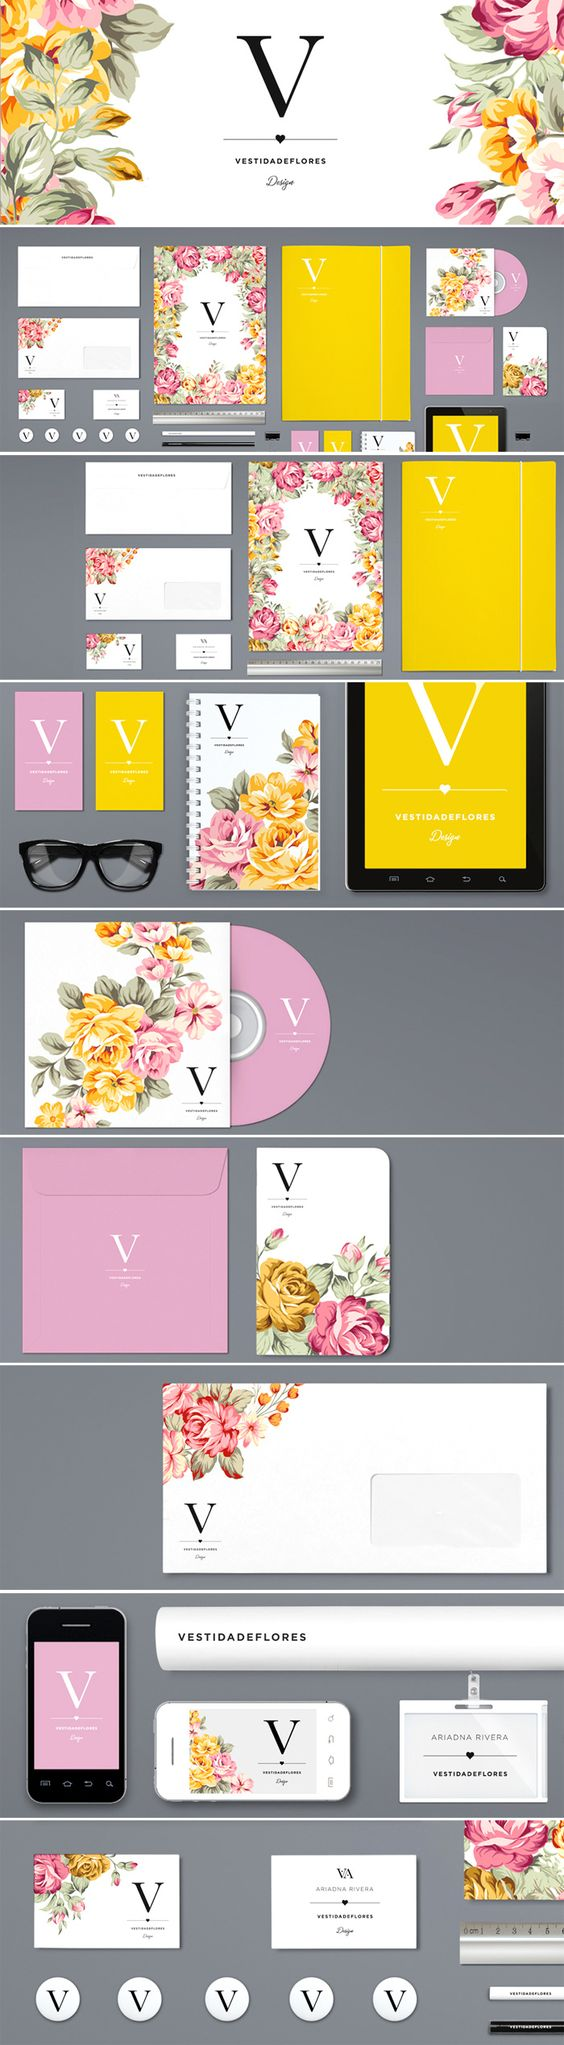 Vestidadeflores #stationery design and floral branding inspiration